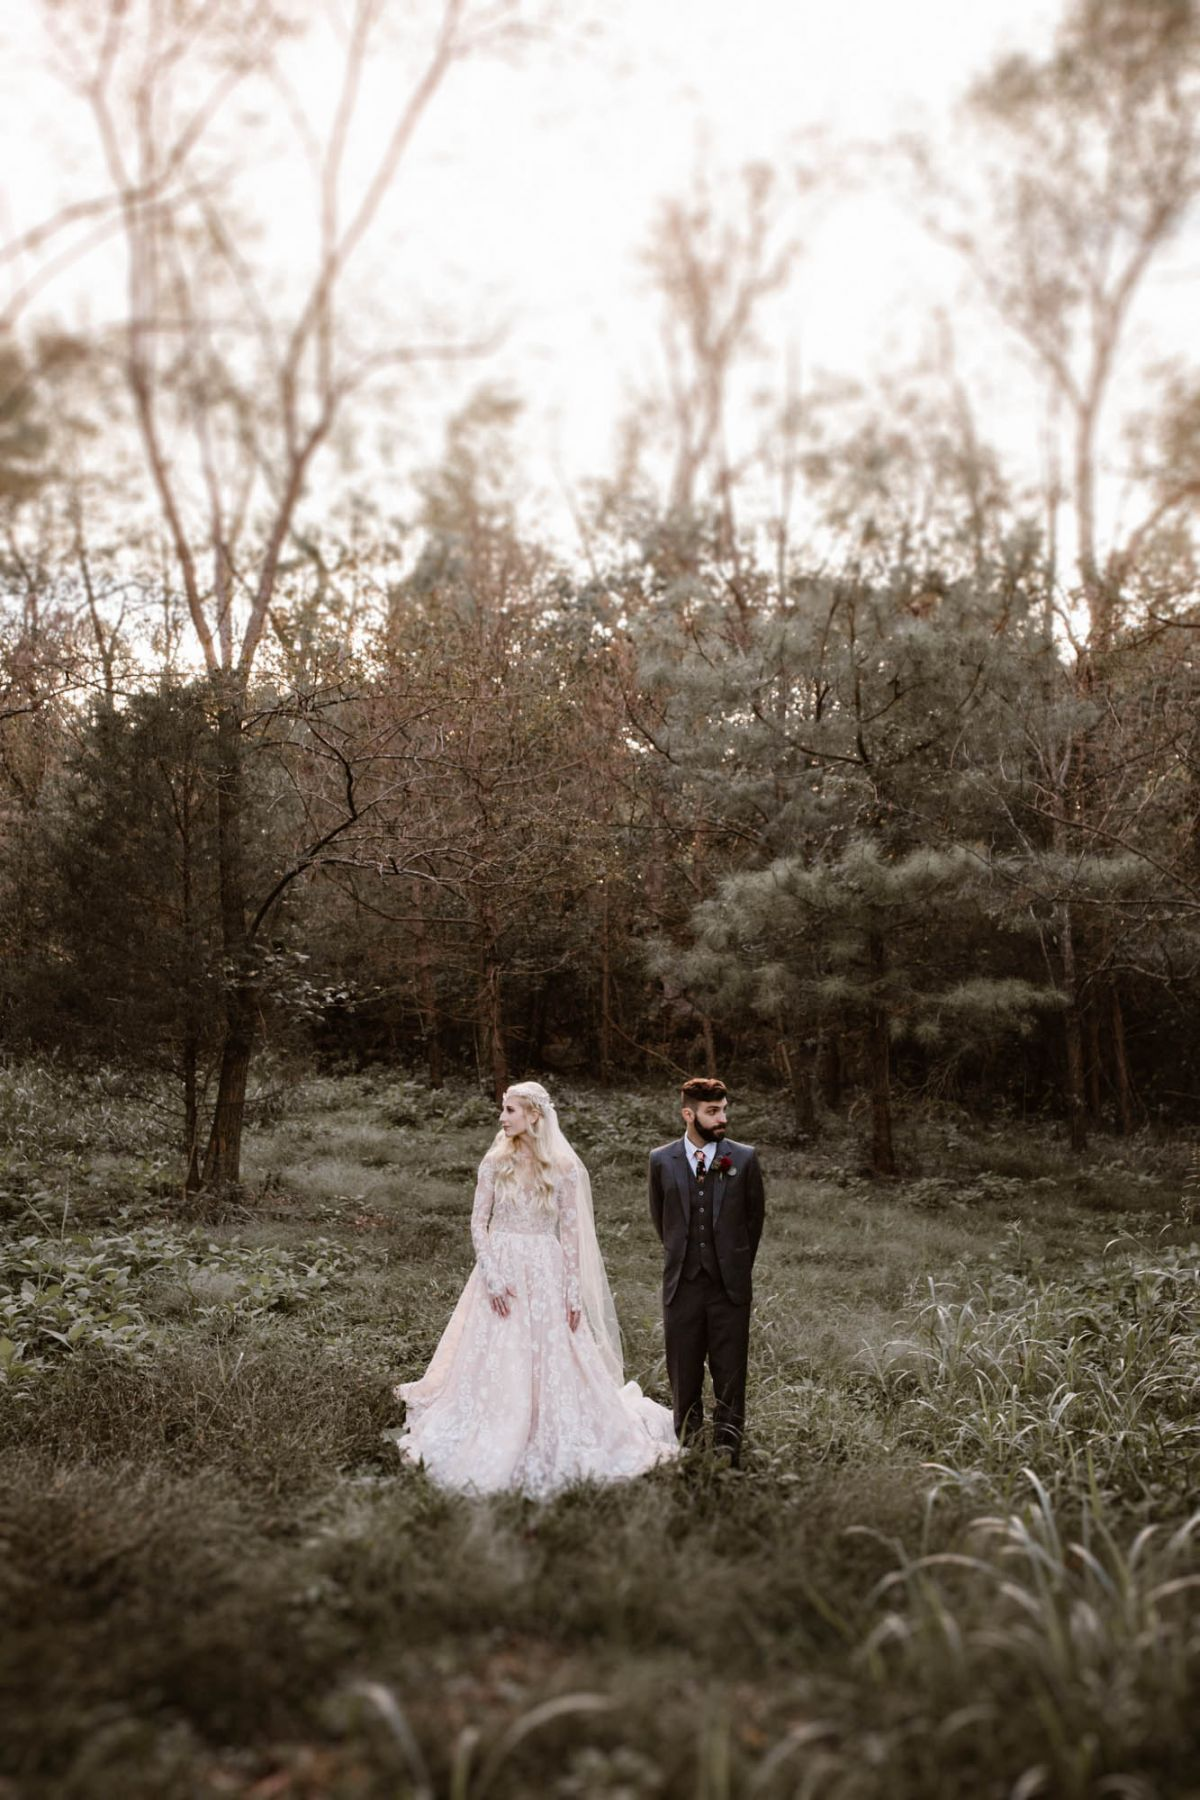 Erin Morrison Photography | Knoxville Wedding Photographer